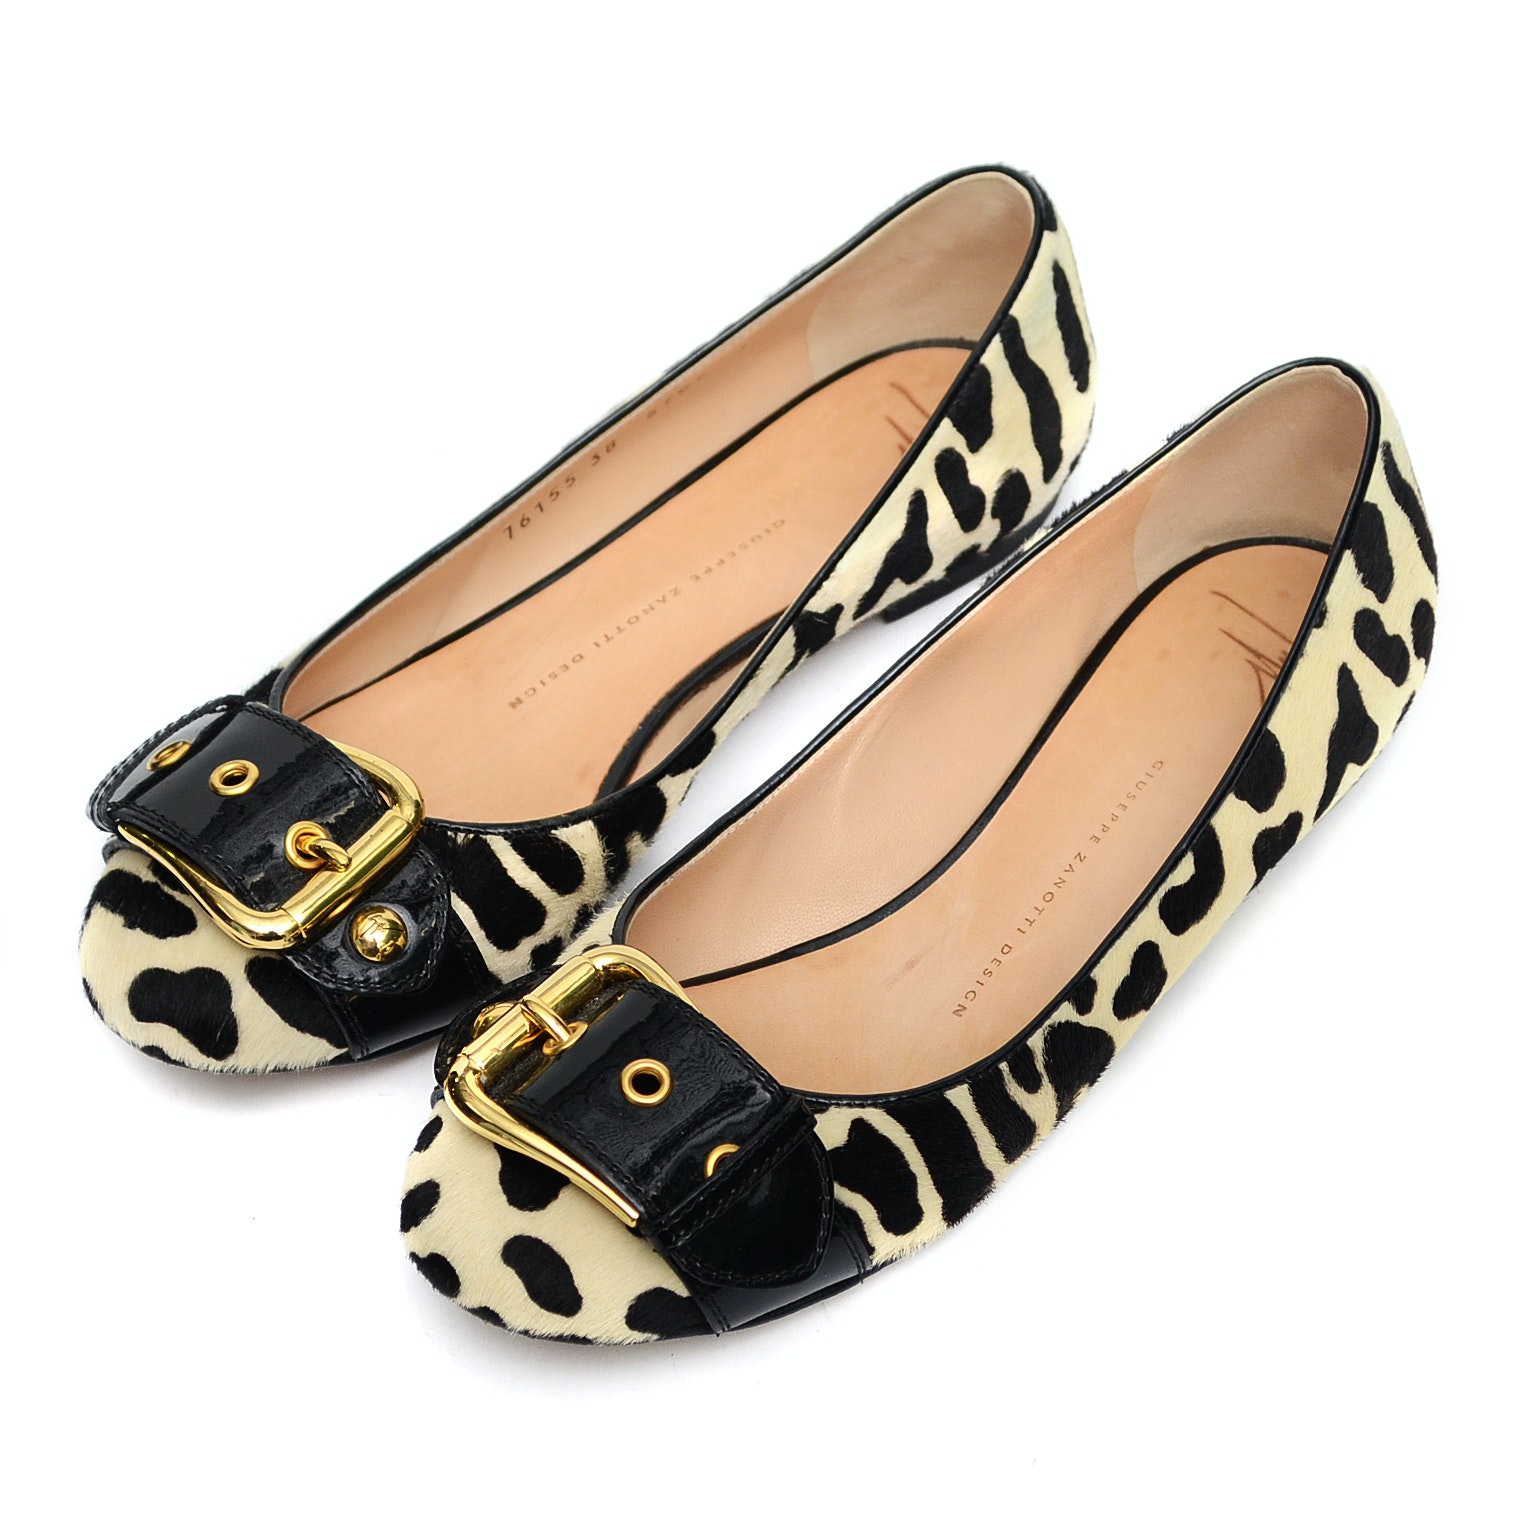 Ladies Guiseppe Zanotti Printed Pony Hair Flats with Black Patent Buckle